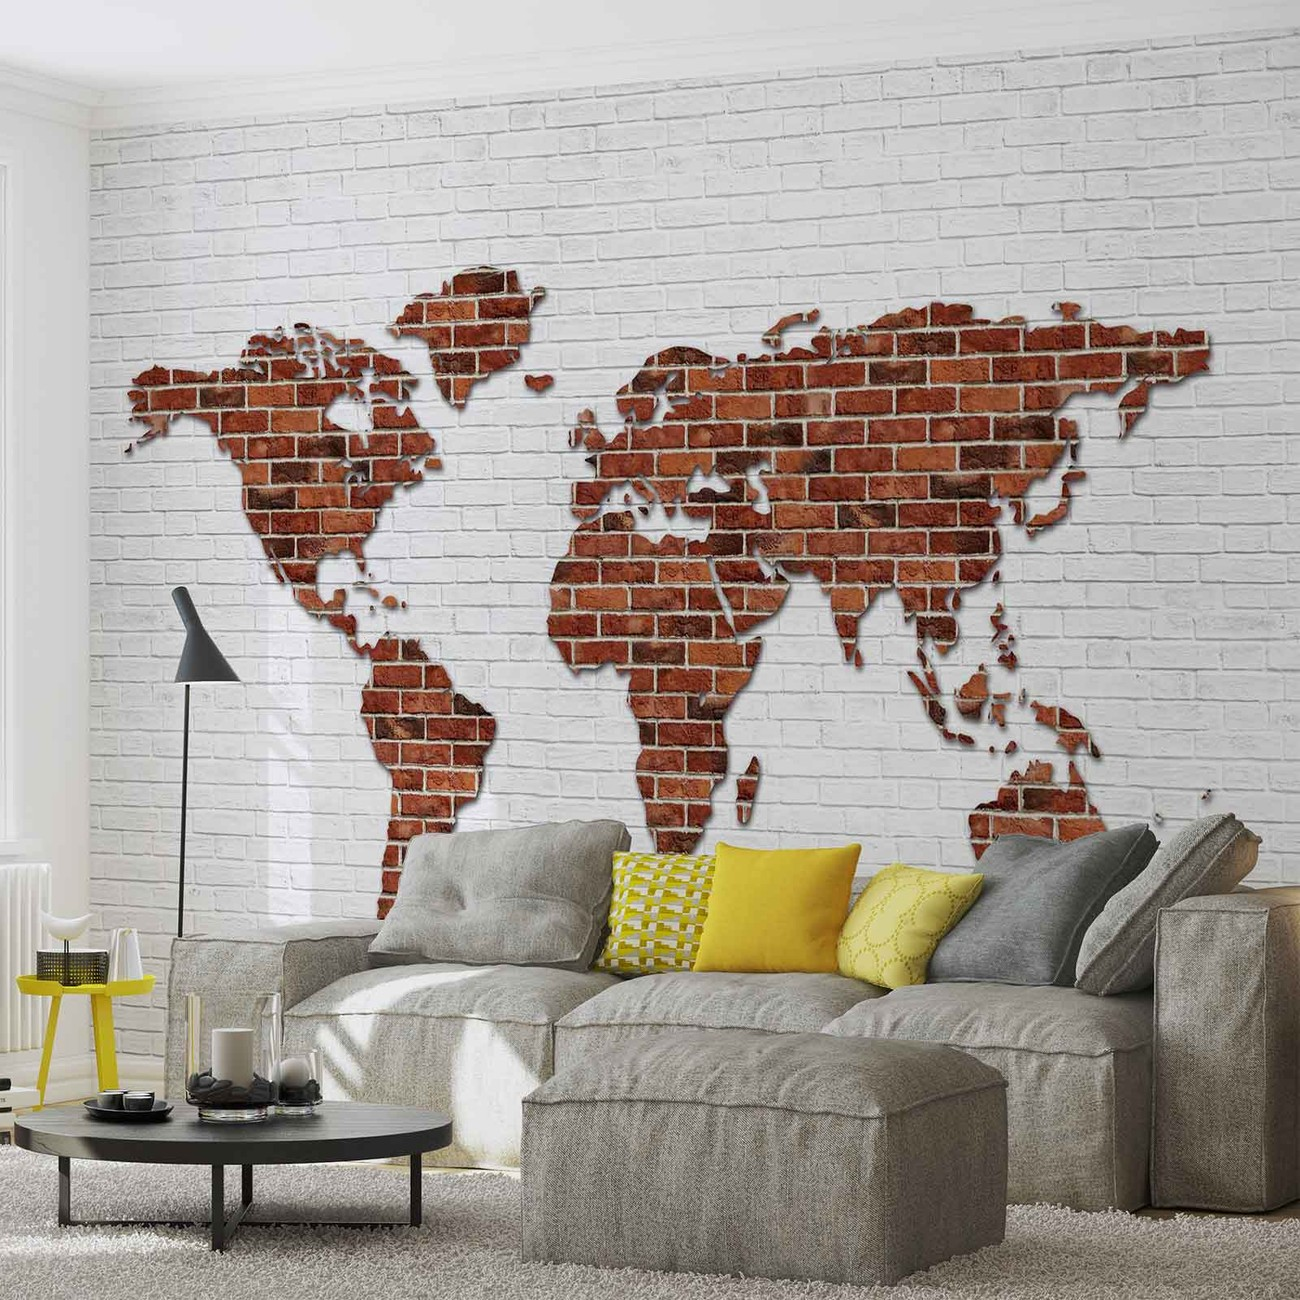 Brick wall world map wall paper mural buy at europosters for Brick wall decal mural